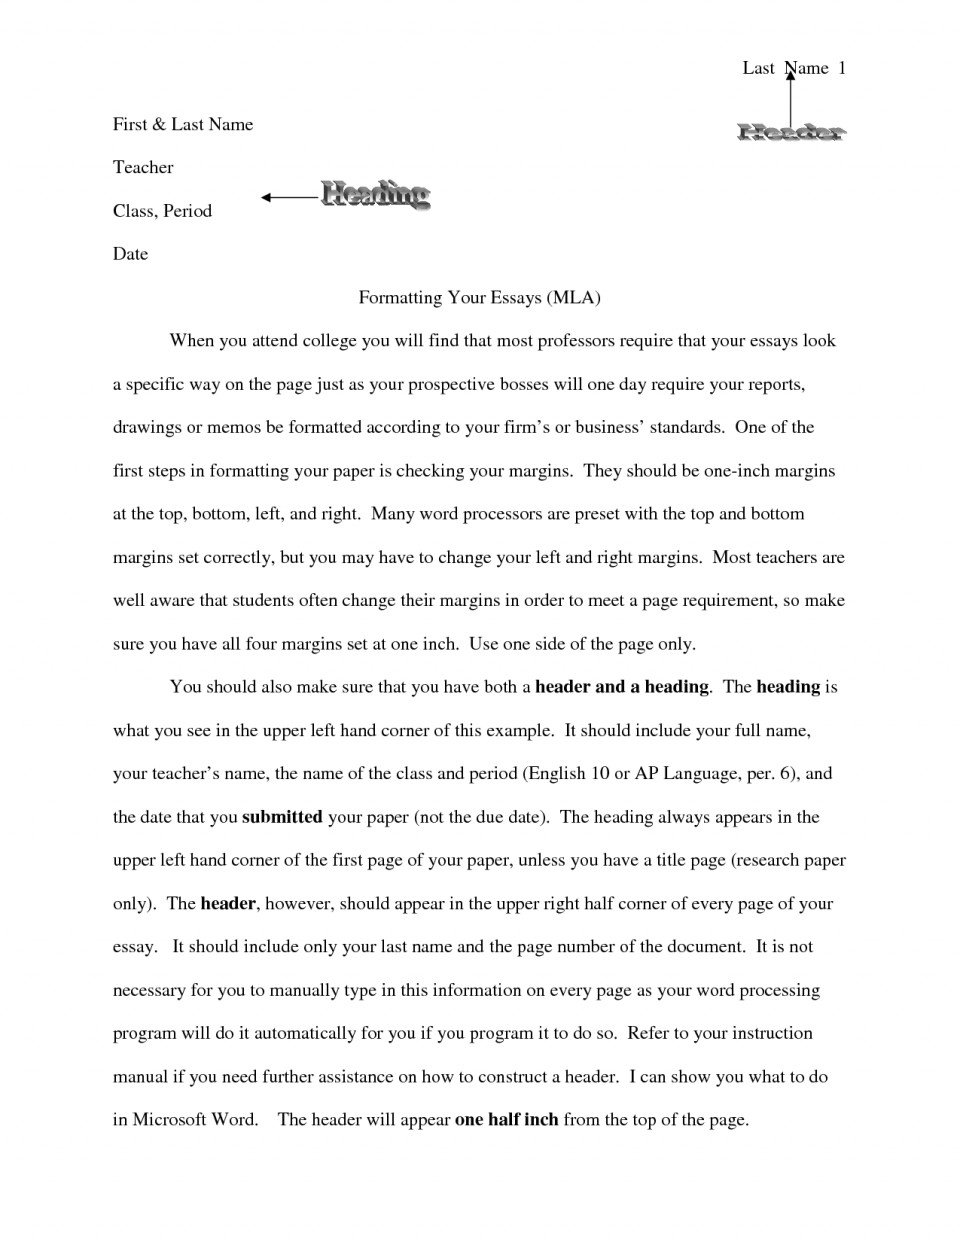 003 Nnftftofsn Essay Example College Incredible Heading Admissions Format Application Papers 960